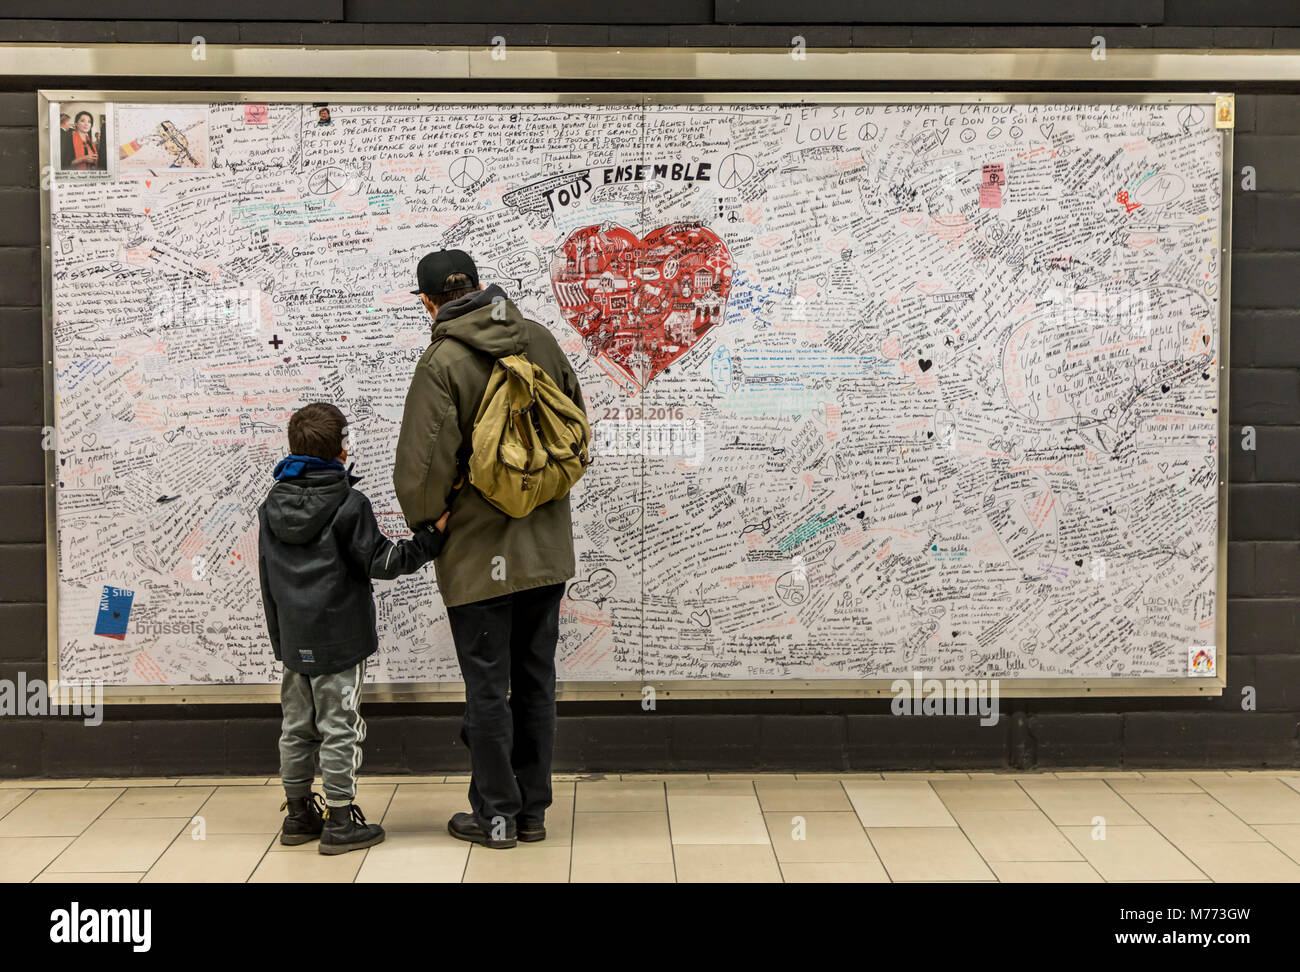 Memorial, commemorative plaque, for victims of terrorism in Maelbeek subway station, Maalbeek, in which 20 people - Stock Image